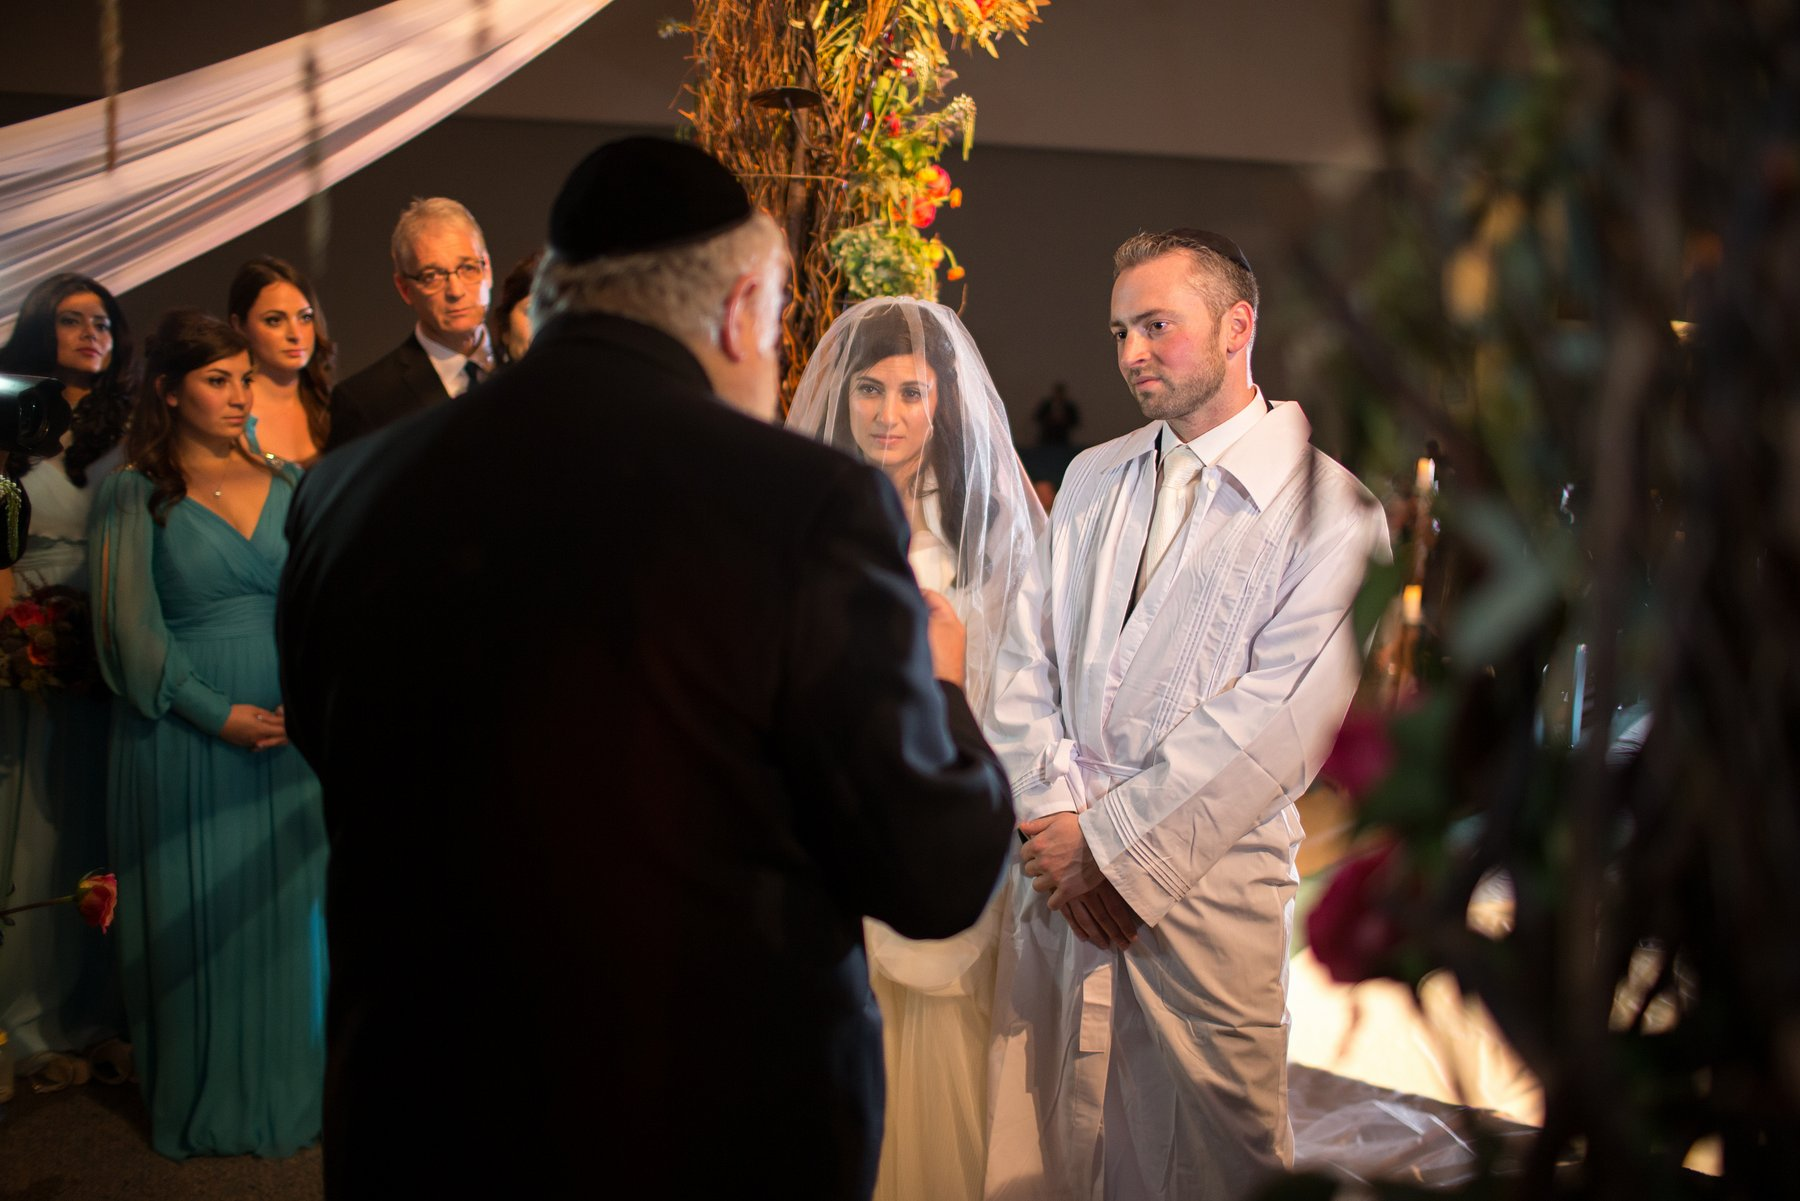 ortodox jewish wedding ceremony photos